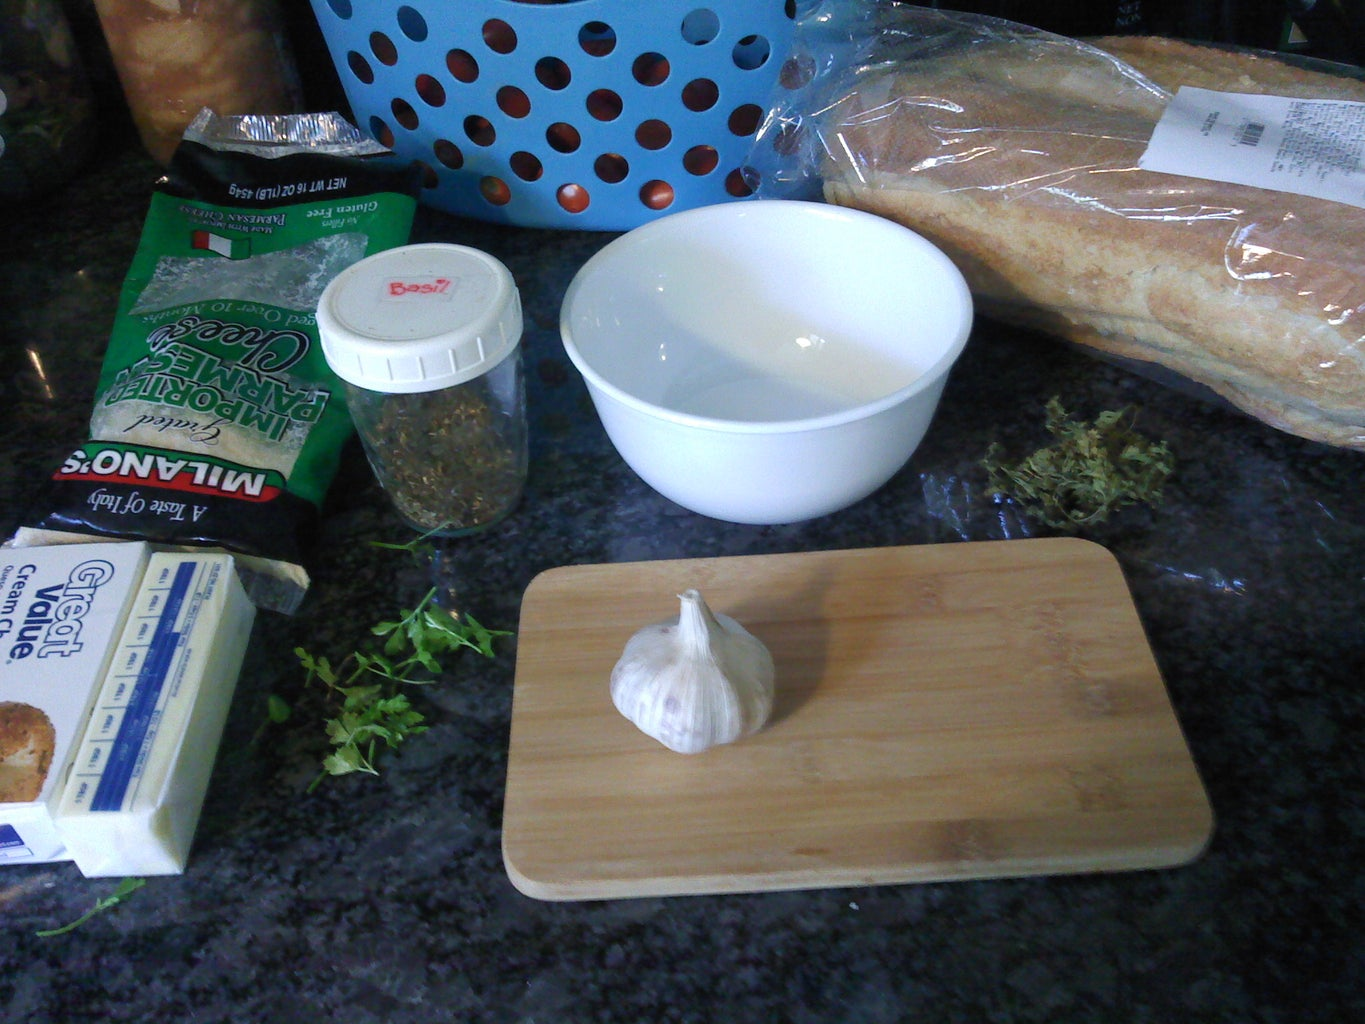 GARLIC! (and the Other Stuff)